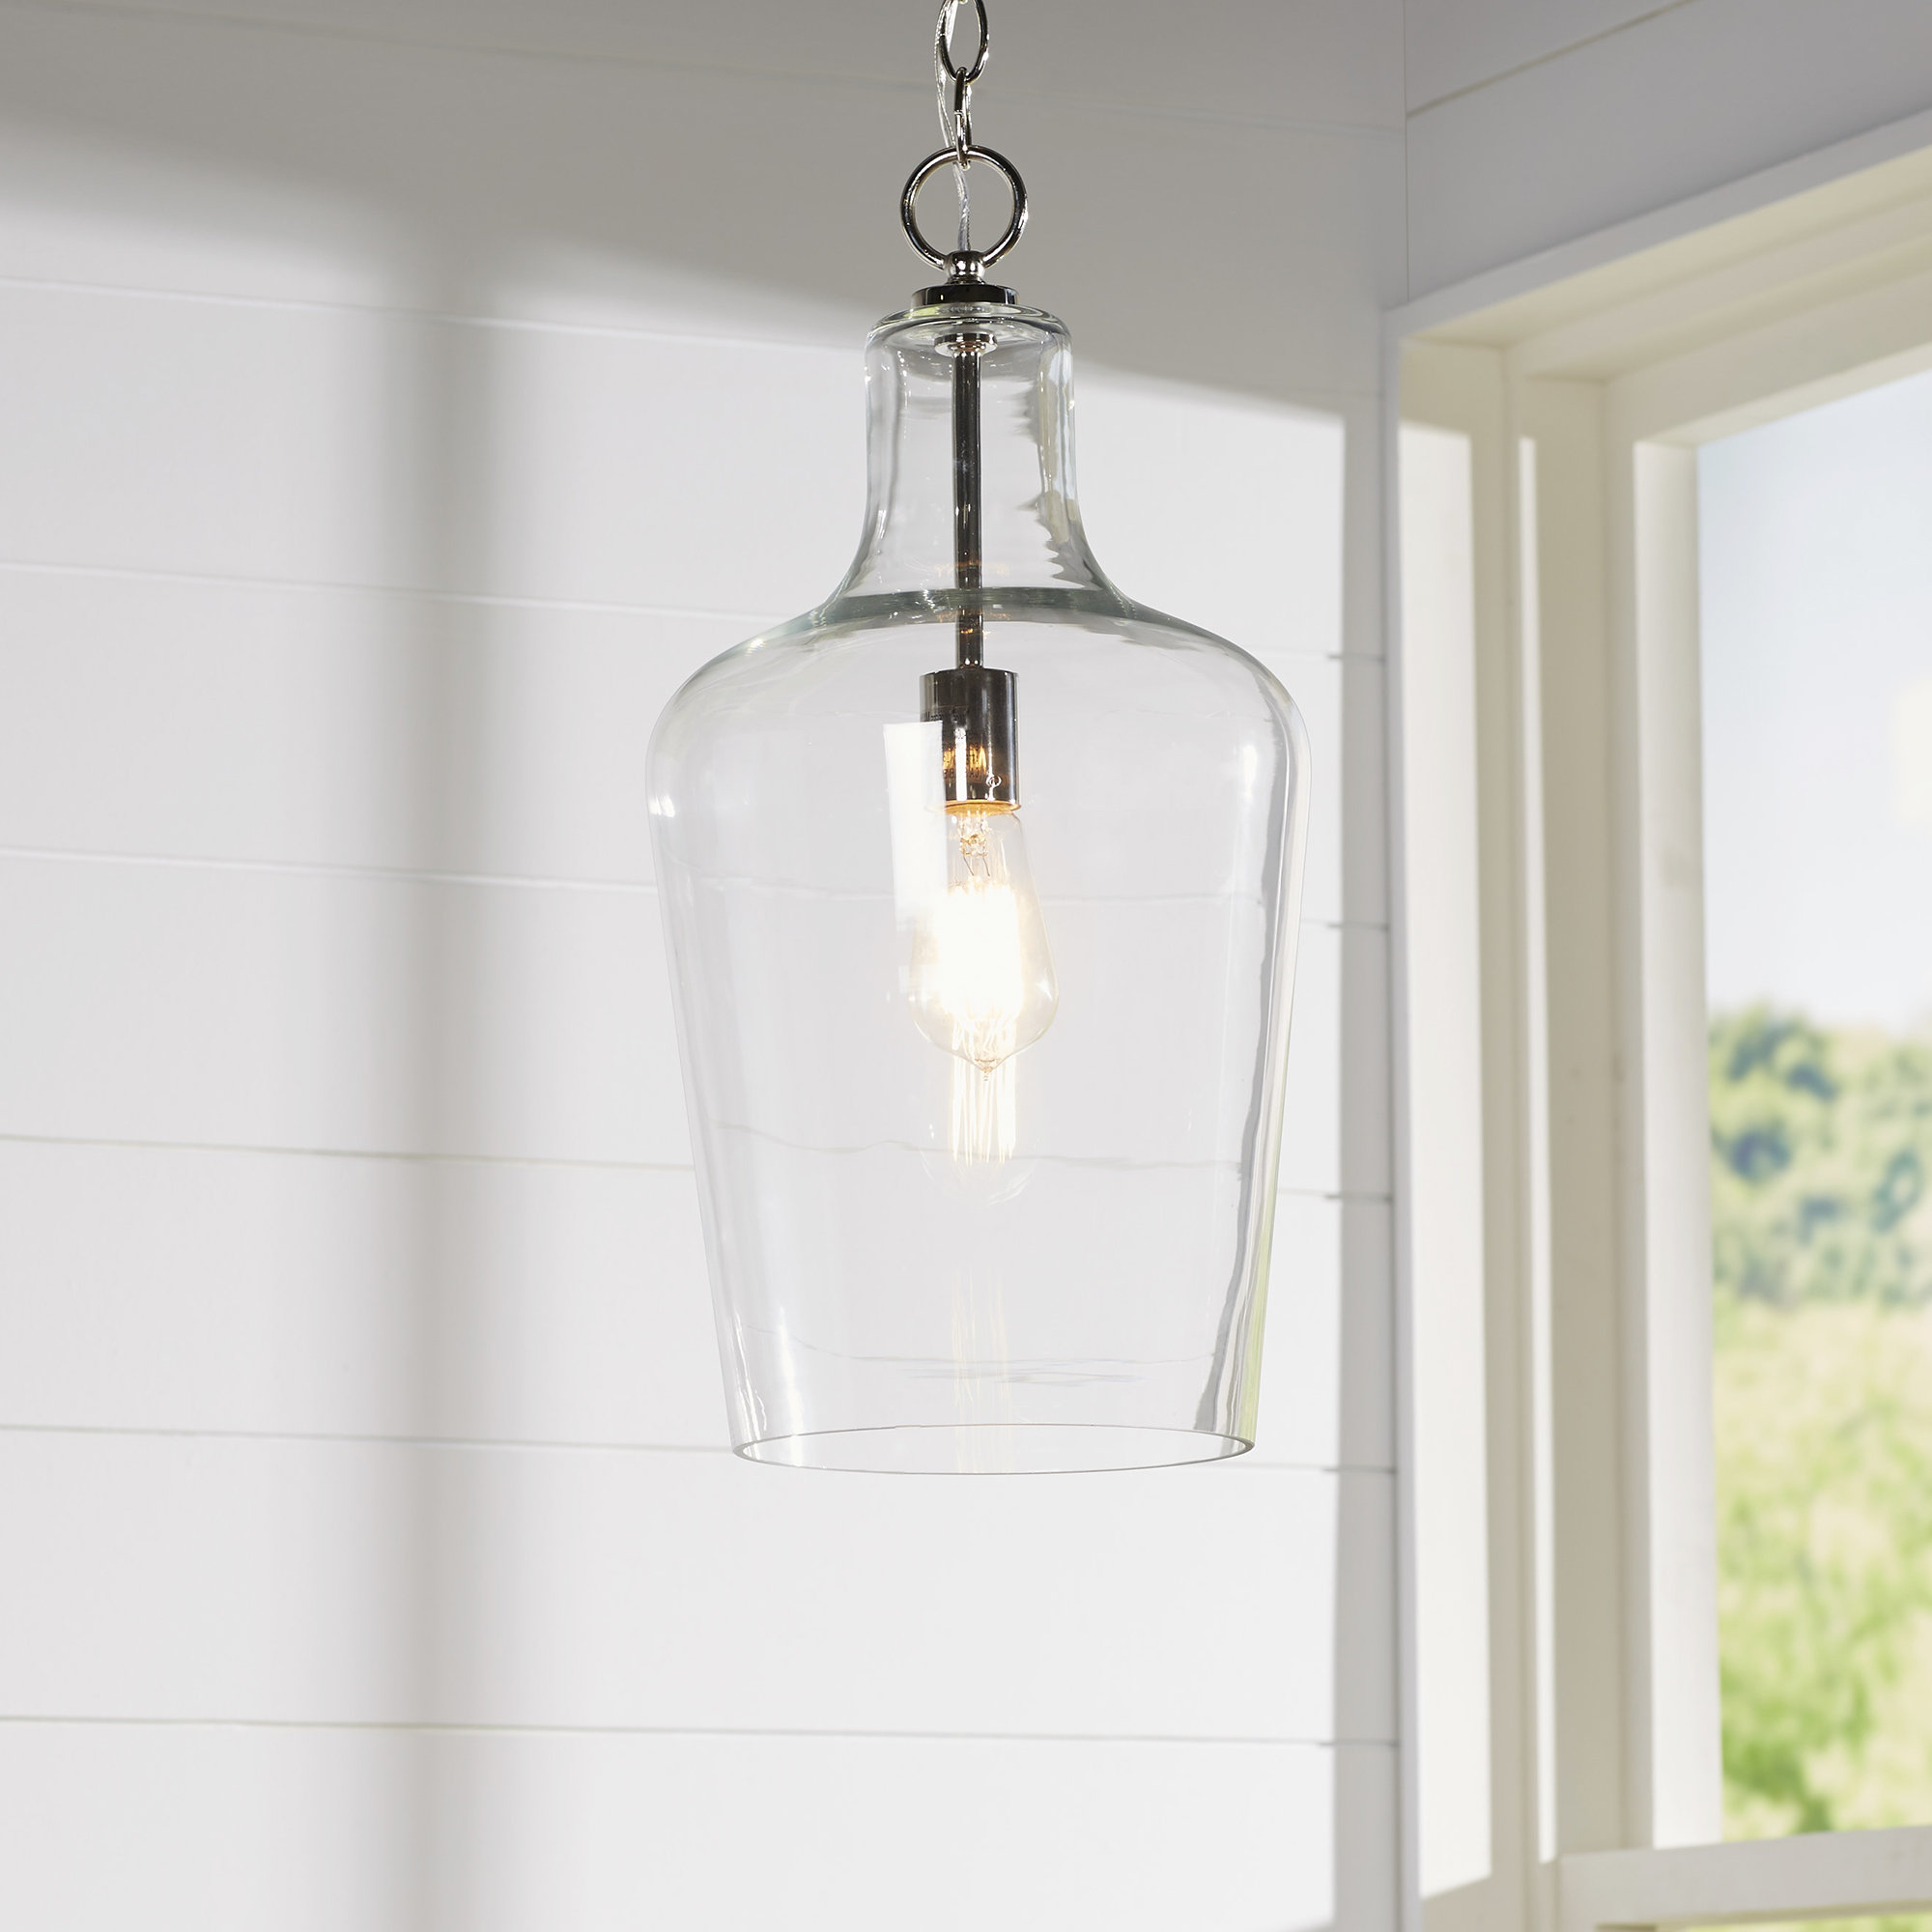 Carey 1 Light Single Bell Pendant With Most Recently Released Clematite 1 Light Single Jar Pendants (View 3 of 20)